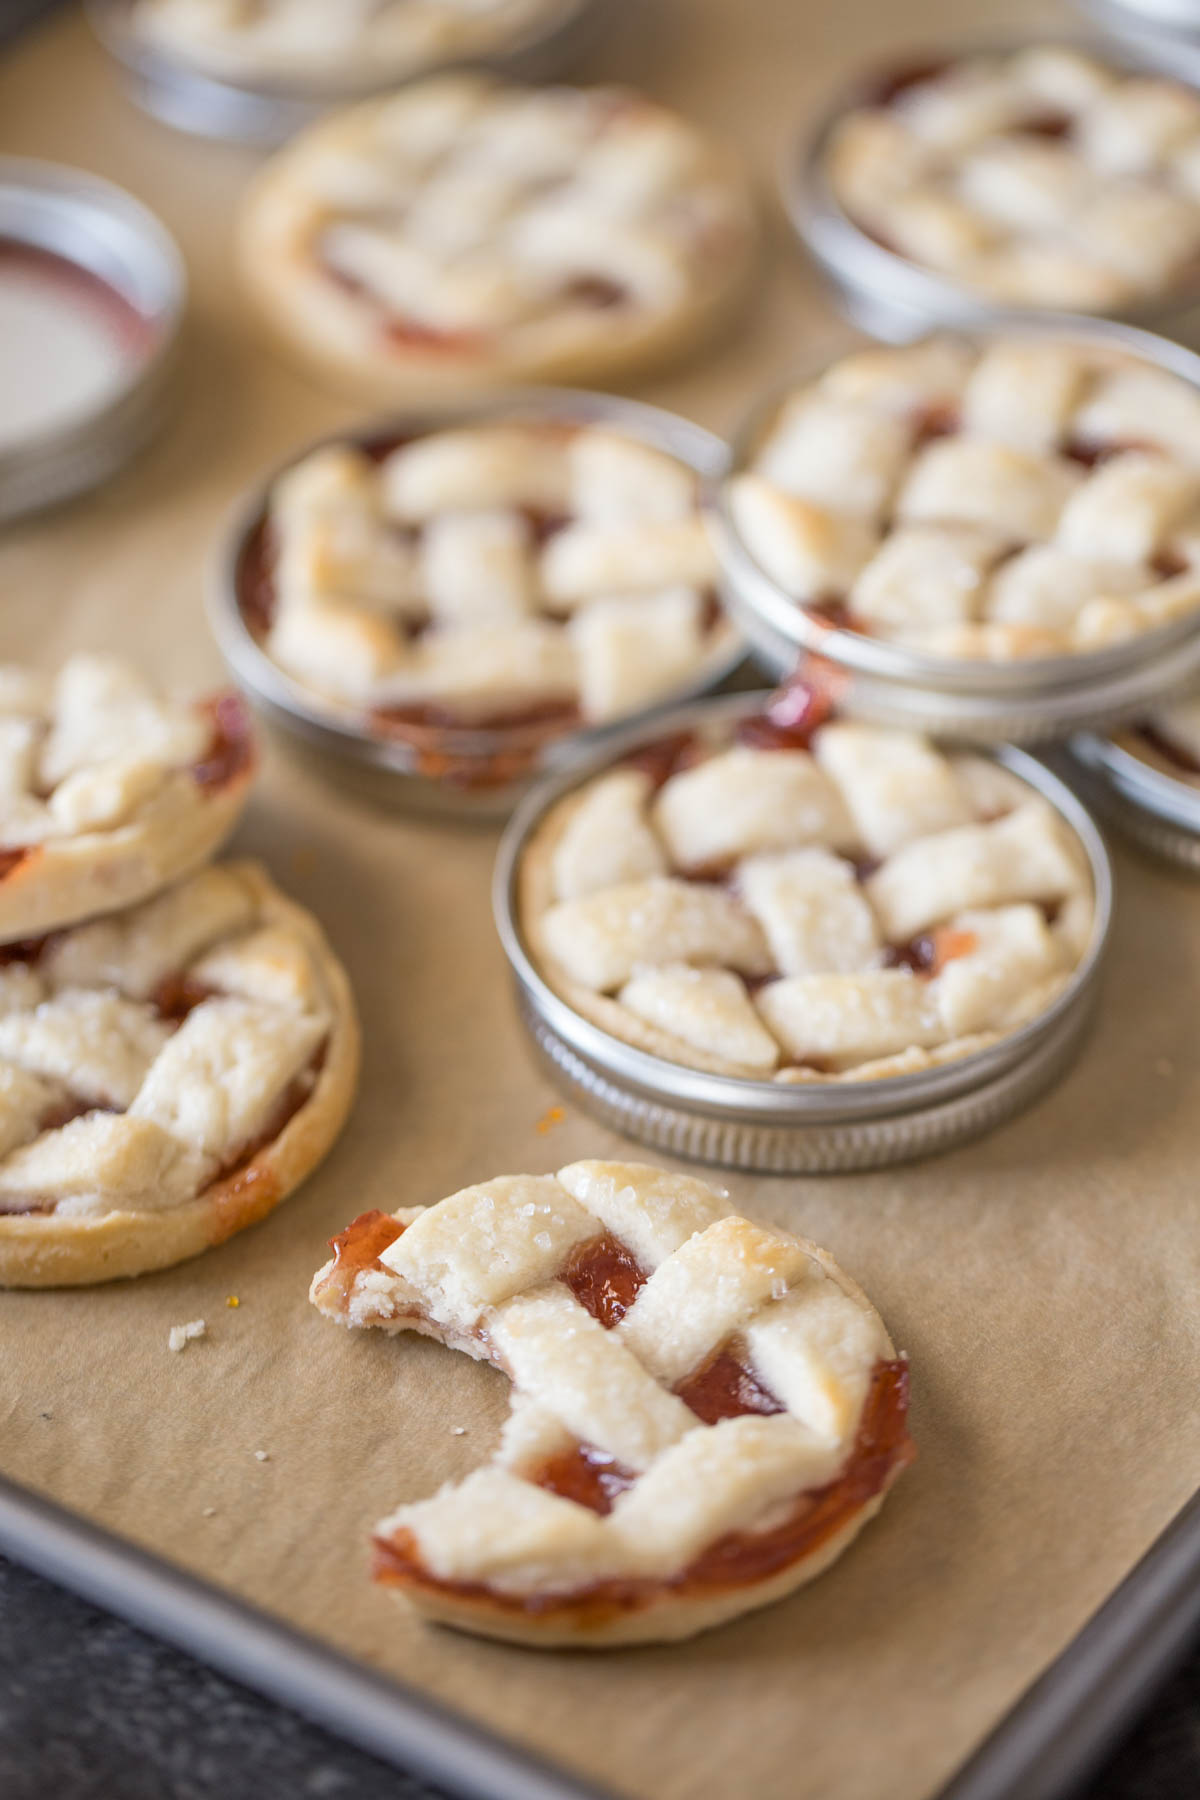 Mini Mason Jar Strawberry Pies on a parchment paper lined baking sheet after they have been baked, with some of the pies out of the lids and one pie with a bite taken out of it.